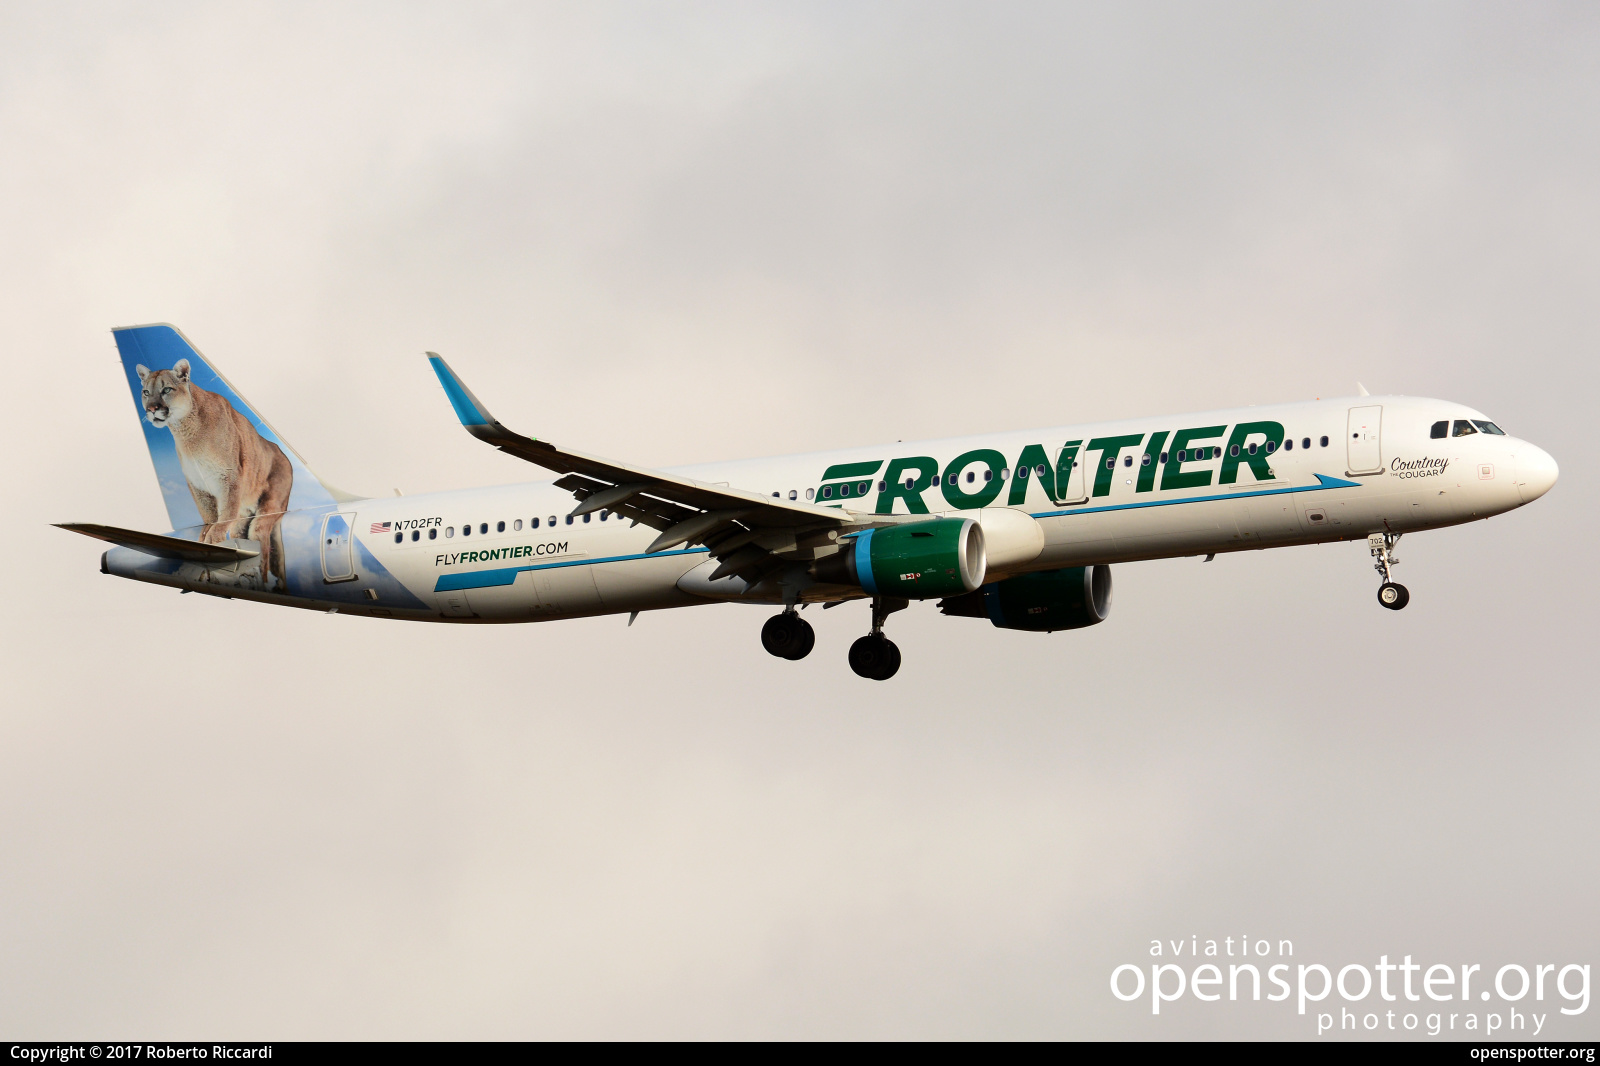 N702FR - Frontier Airlines Airbus A321-211(WL) at Seattle-Tacoma International Airport (SEA/KSEA) taken by Roberto Riccardi | openspotter.org | ID: 51515